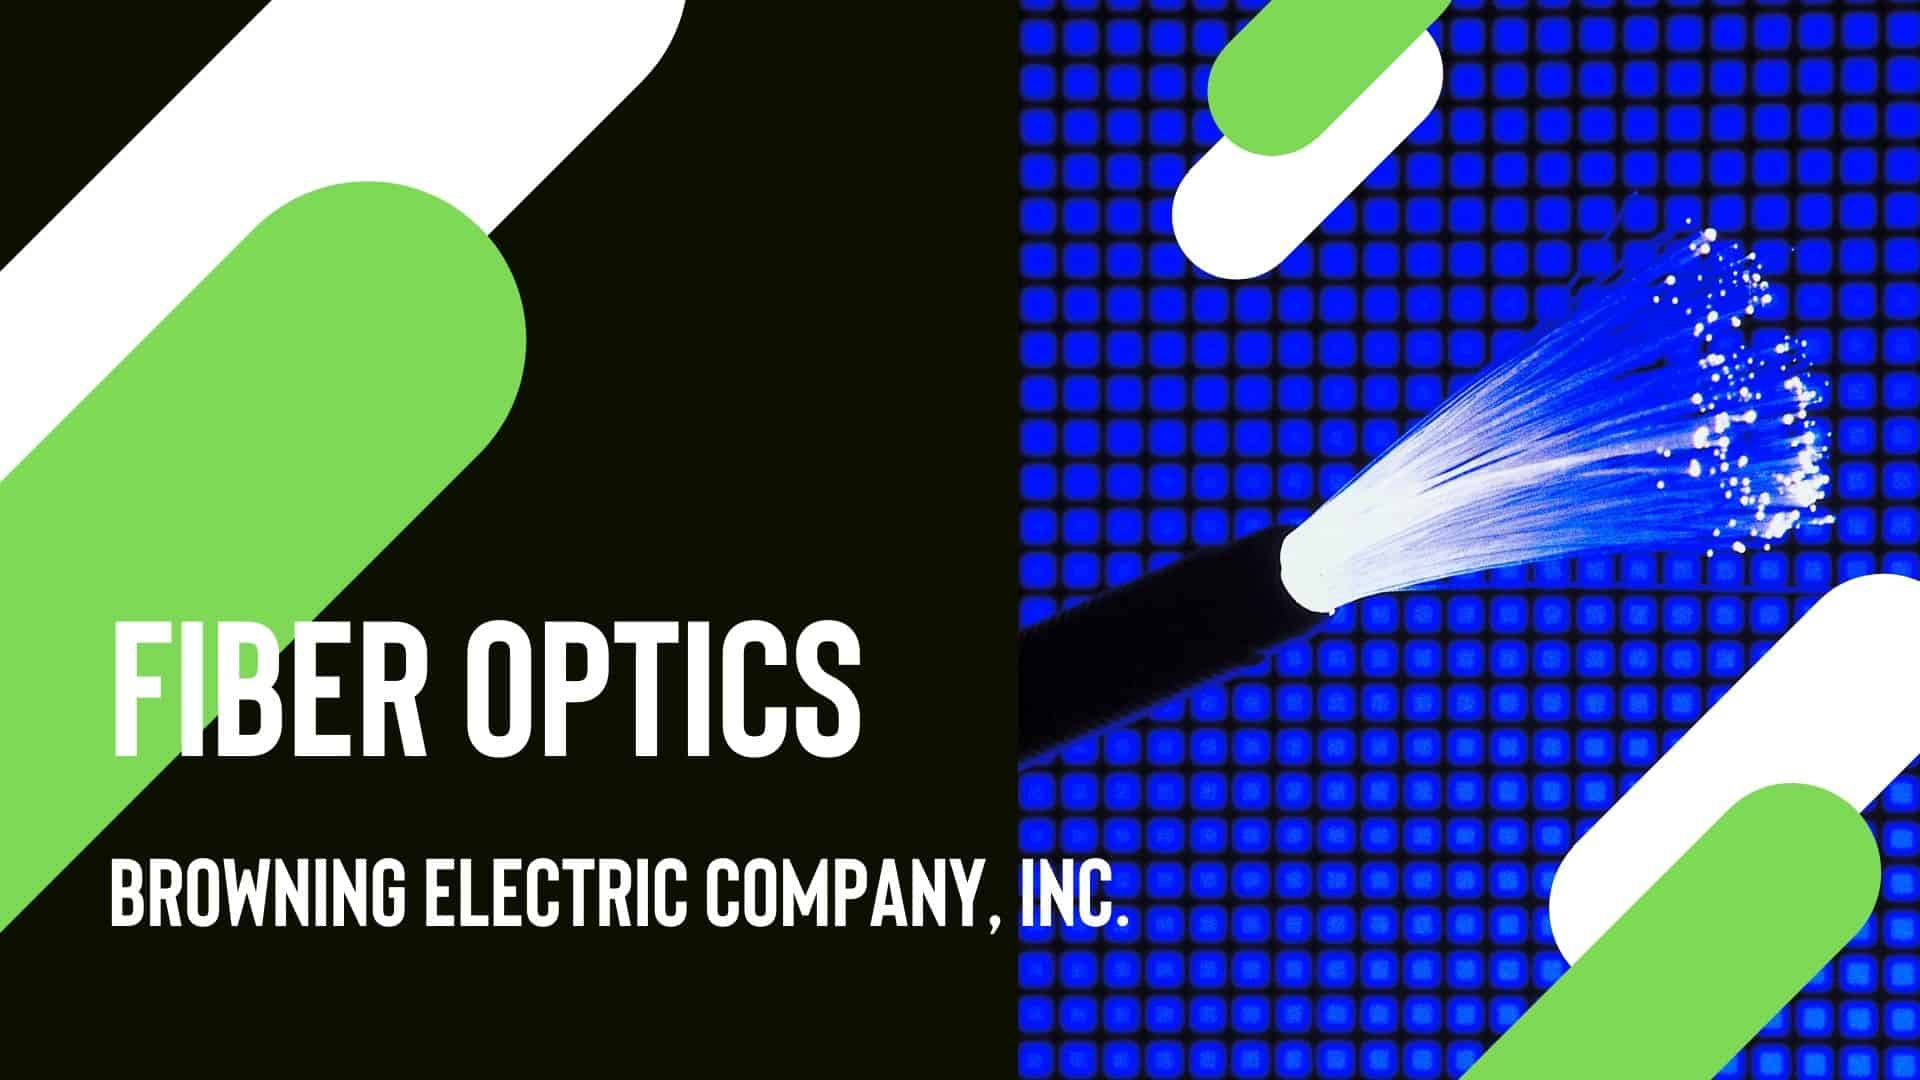 fiber optics services